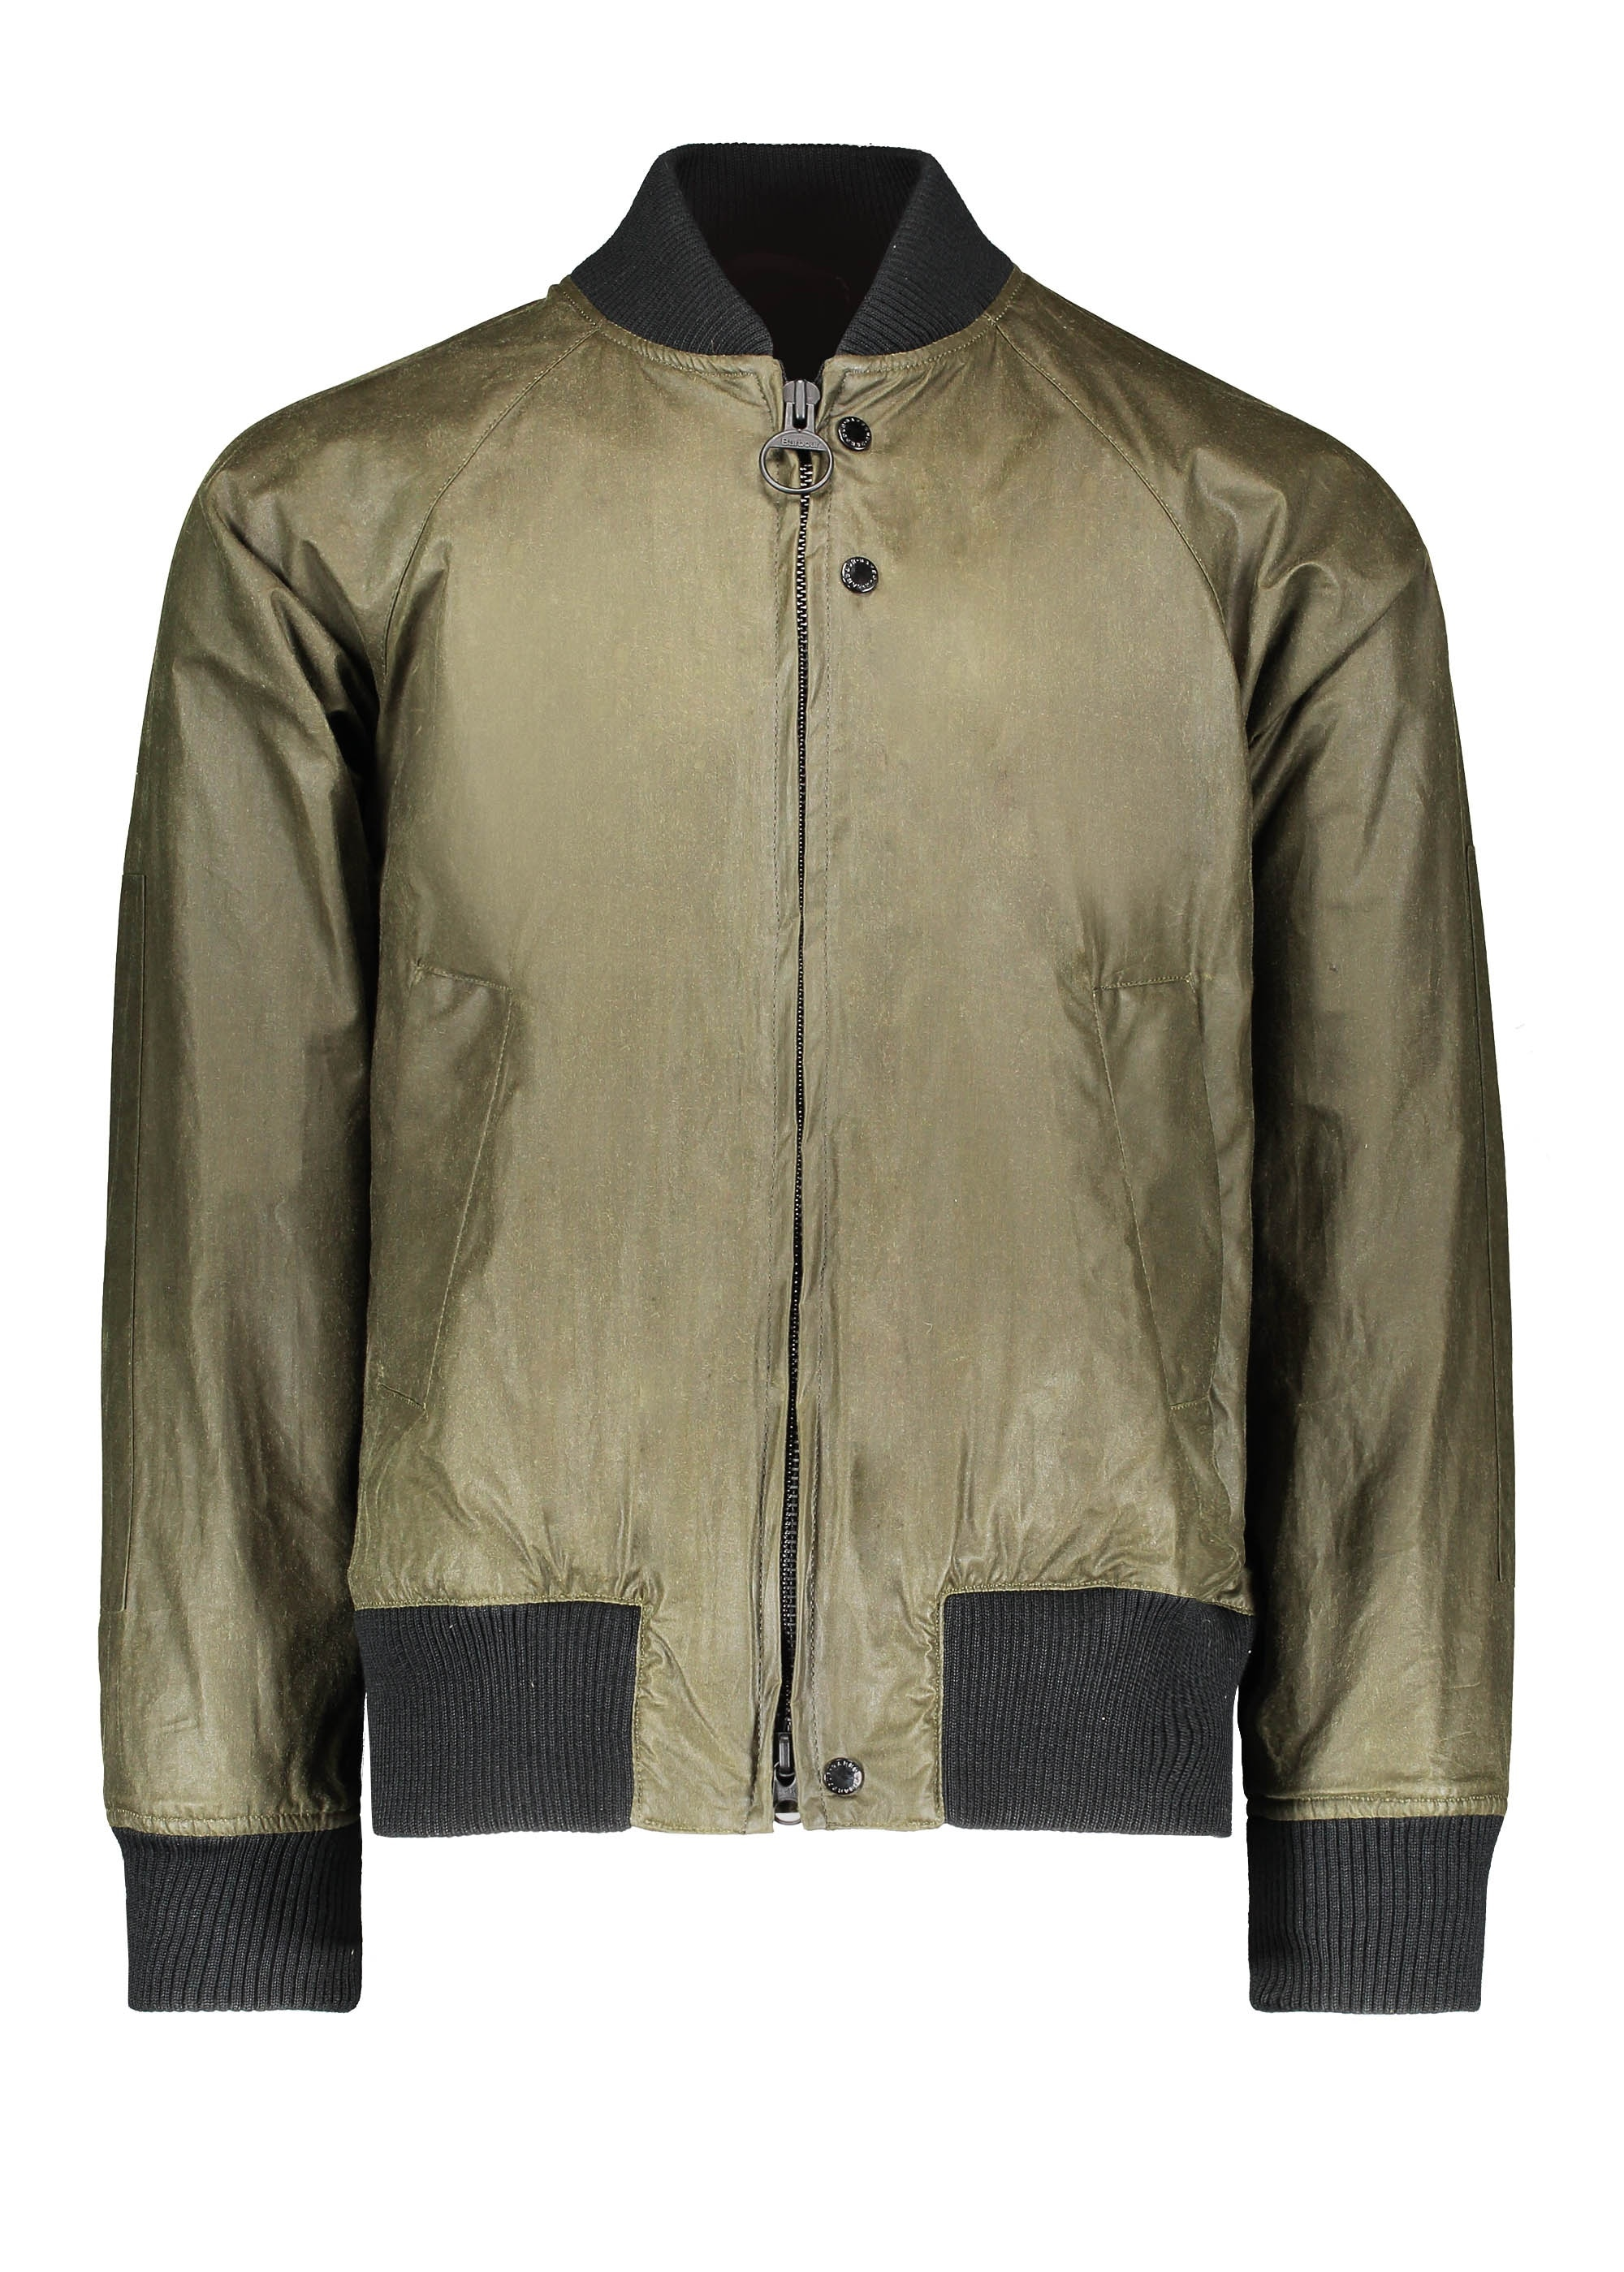 713a706174db Barbour x Engineered Garments Dumbo Wax Archive - Olive - Triads ...